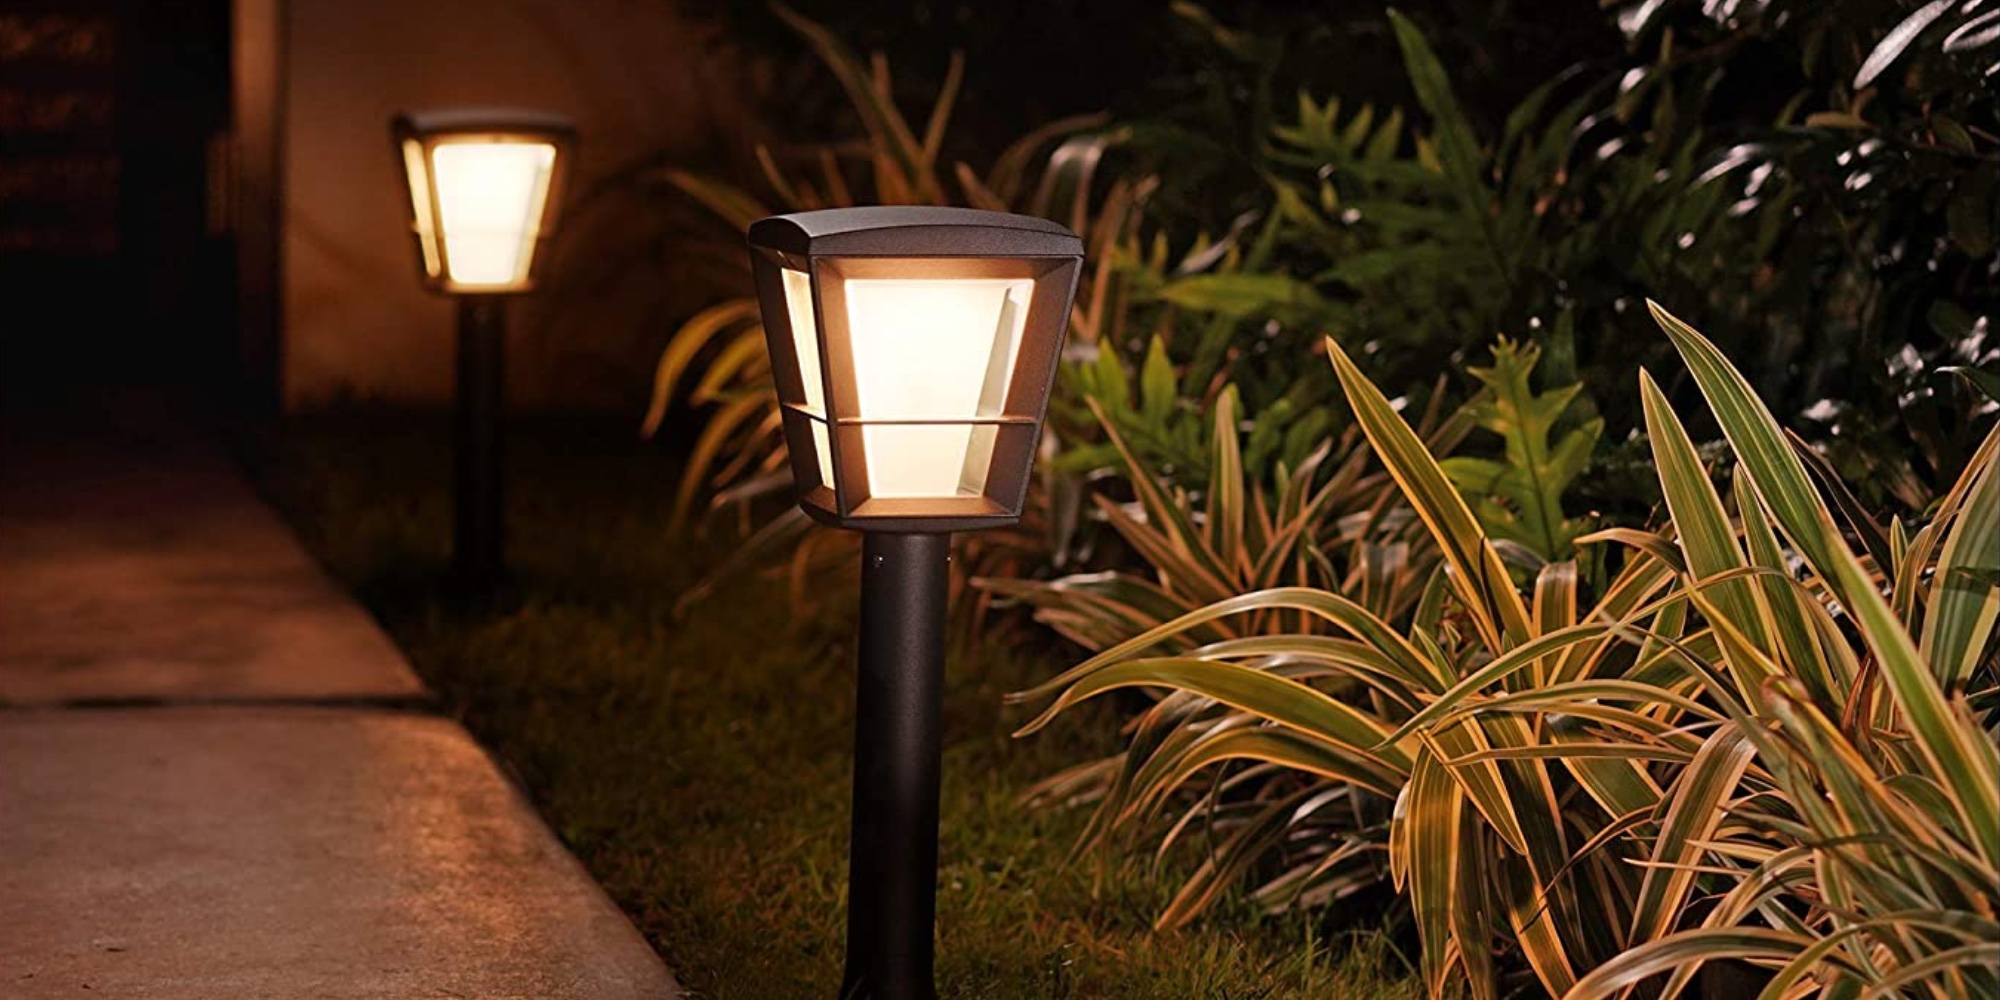 philips hue outdoor lights see rare